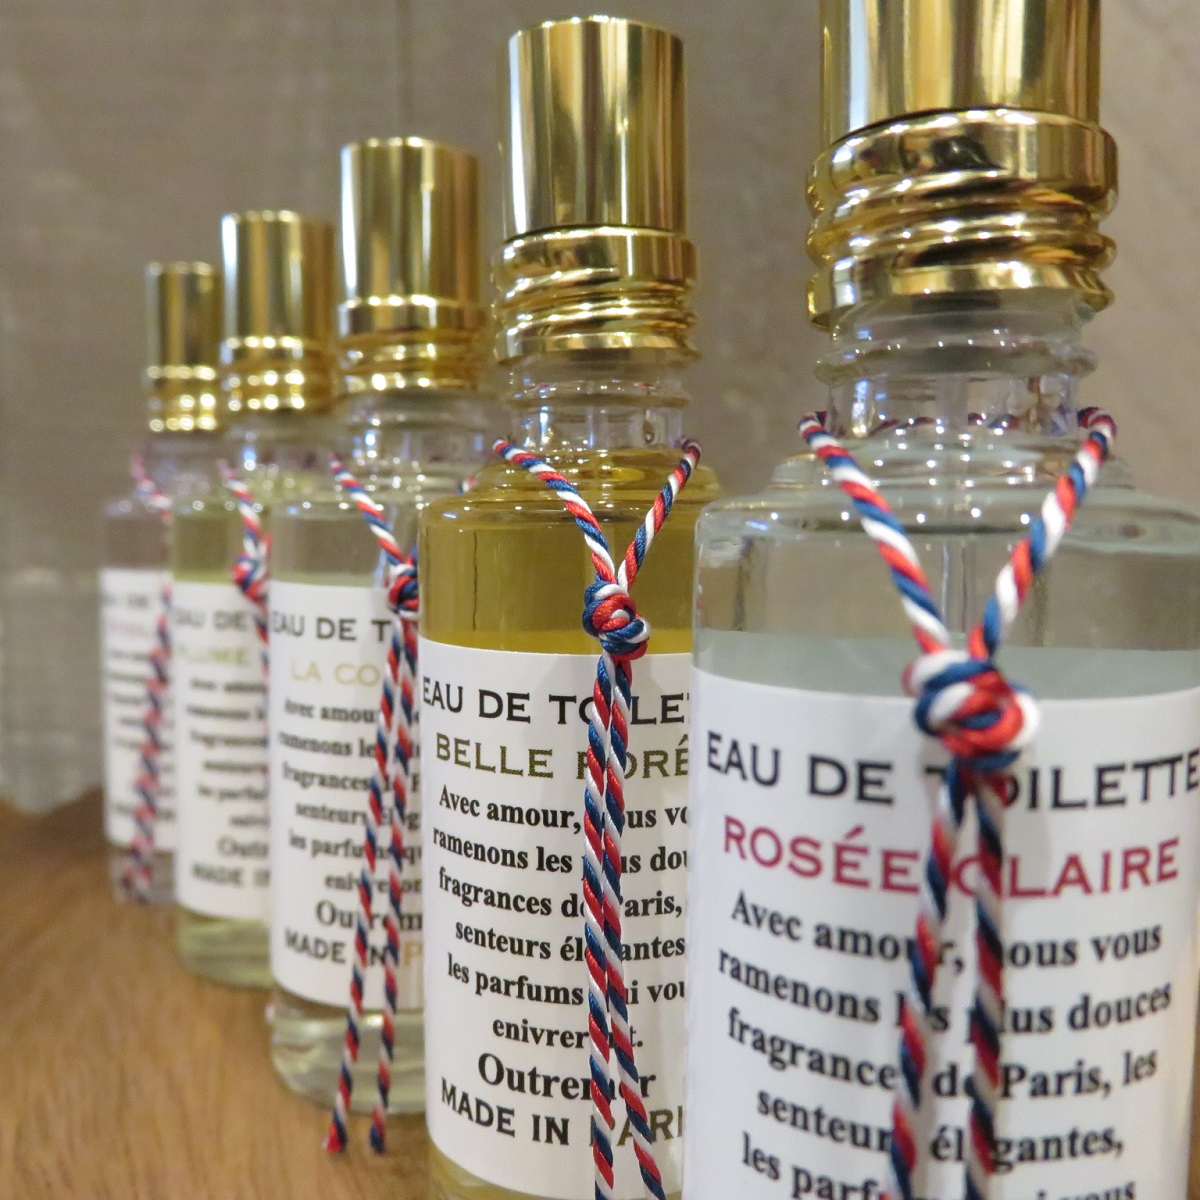 L'Aromarine Made in PARIS fregransordtoire 15 ml rose Clair aeromarine made in Paris